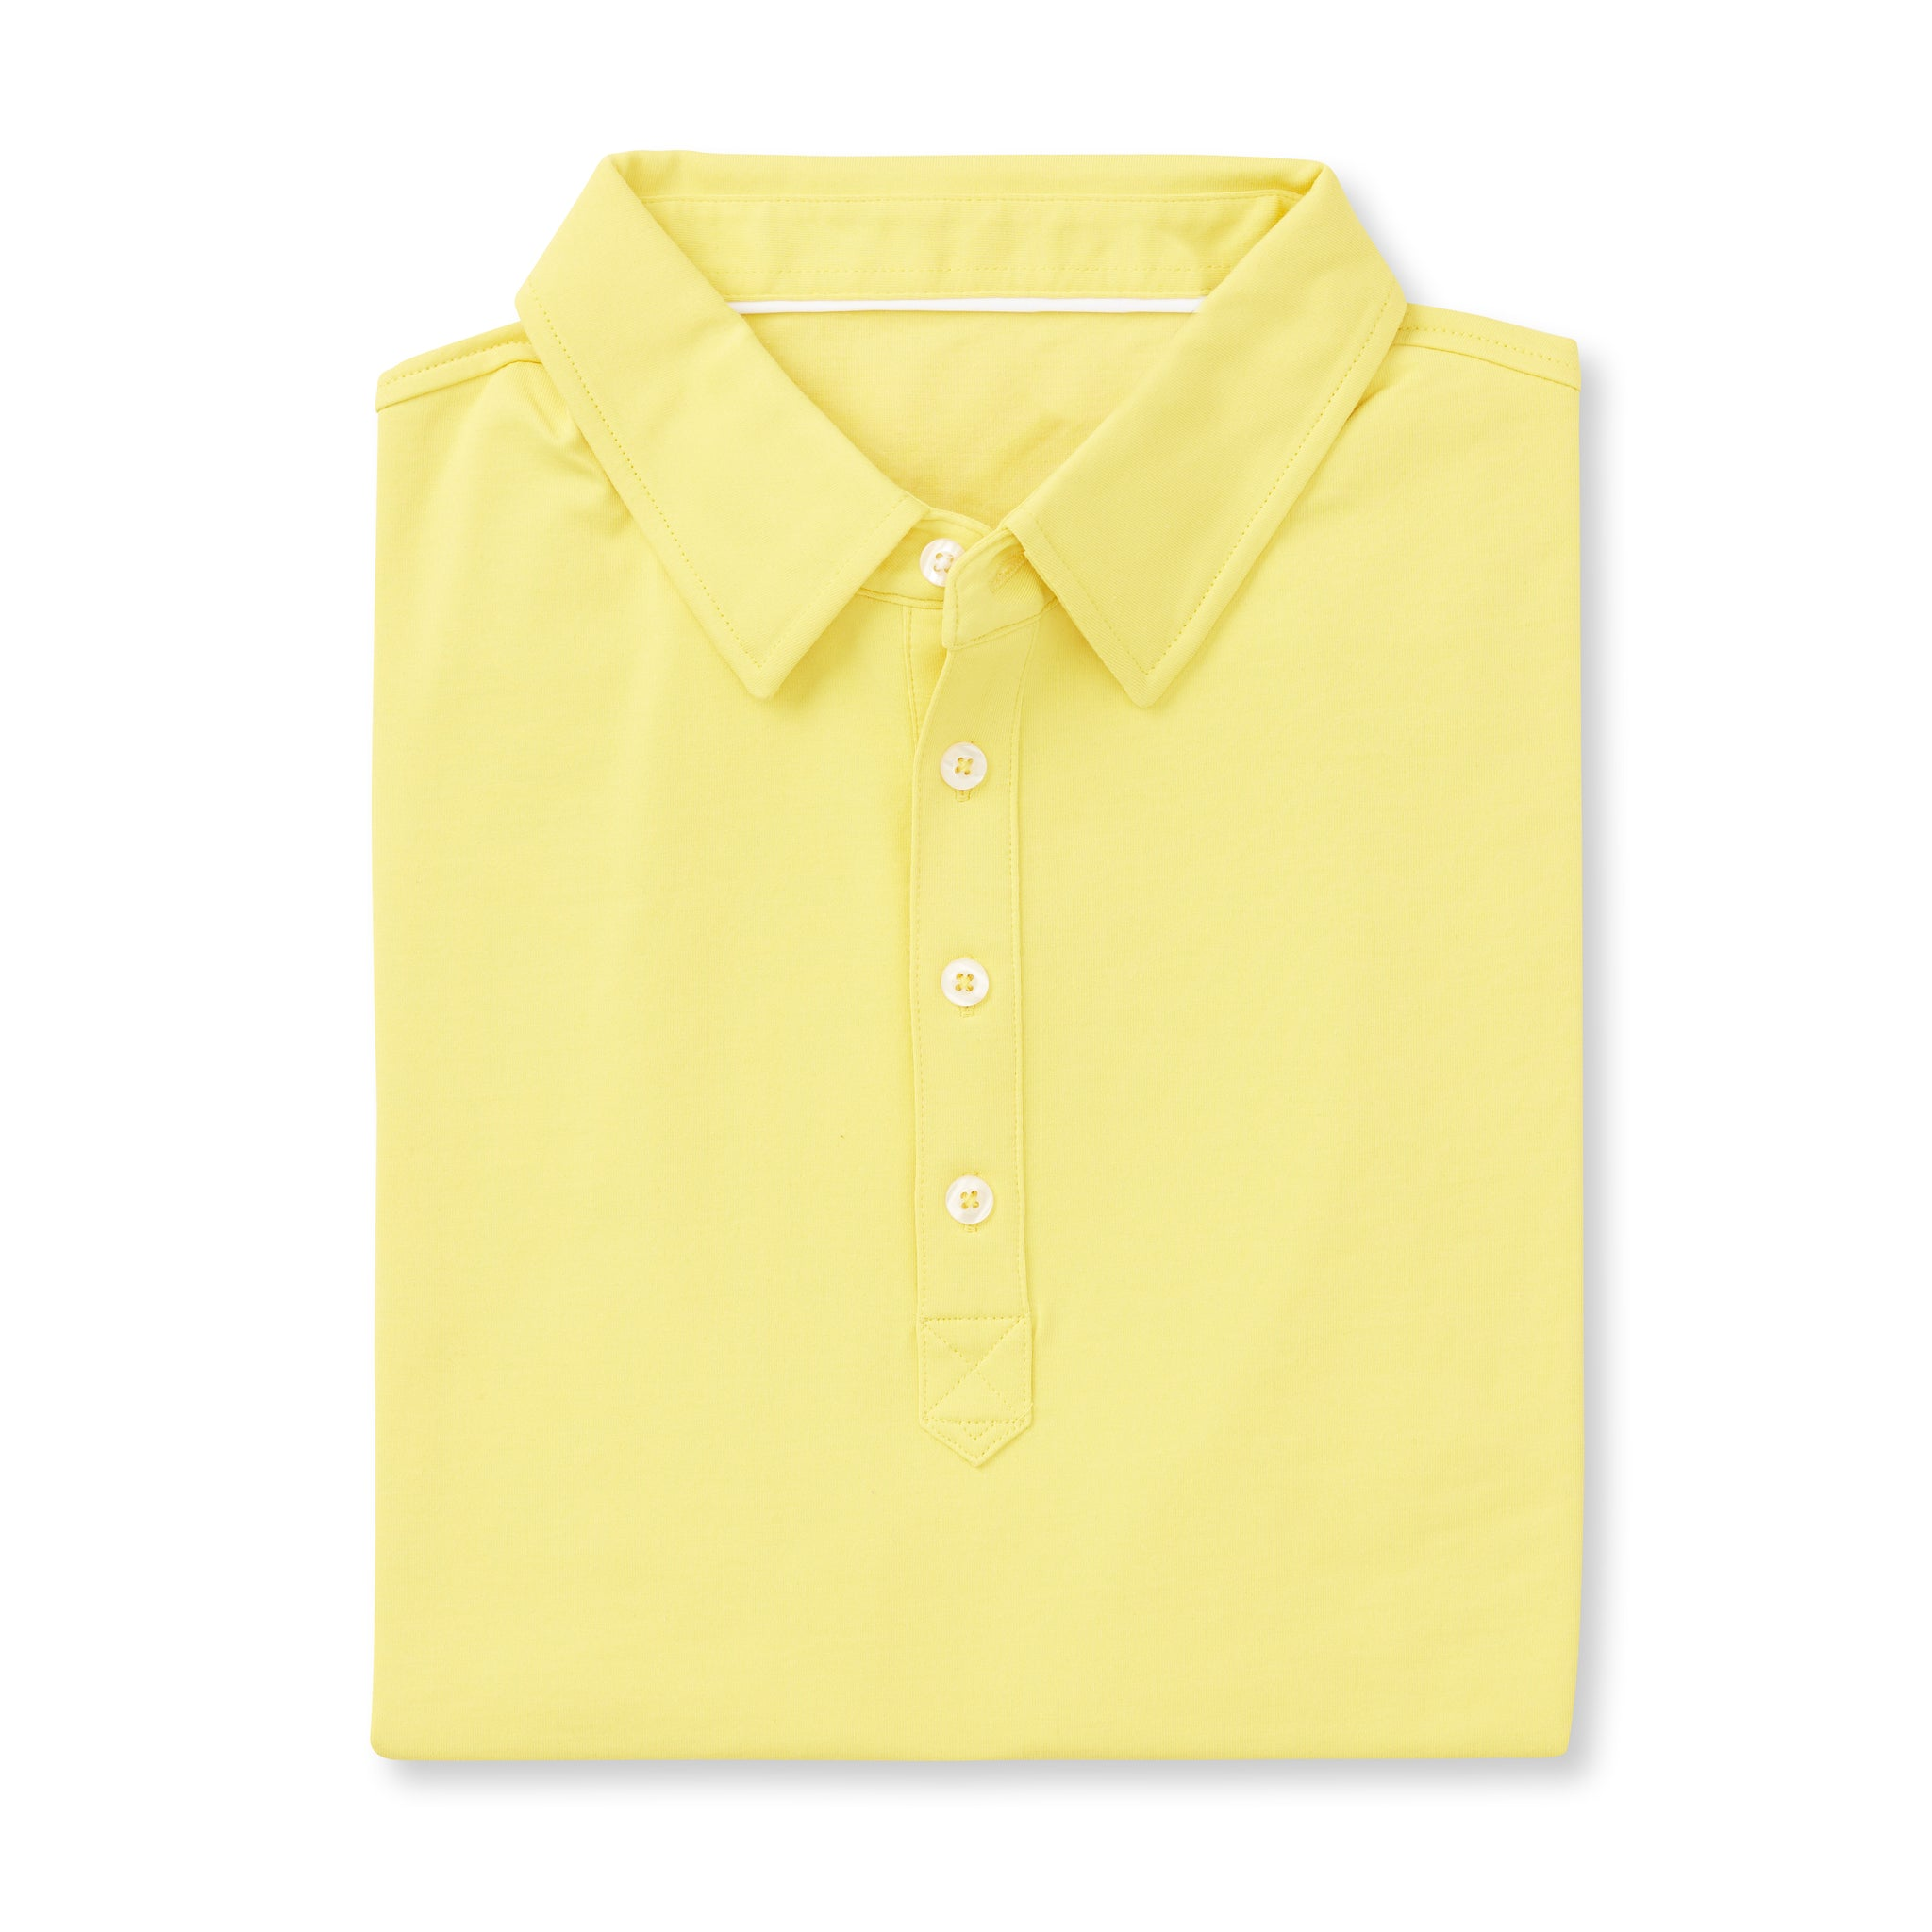 LUXTEC Champions Short Sleeve Polo - Sun IS72400